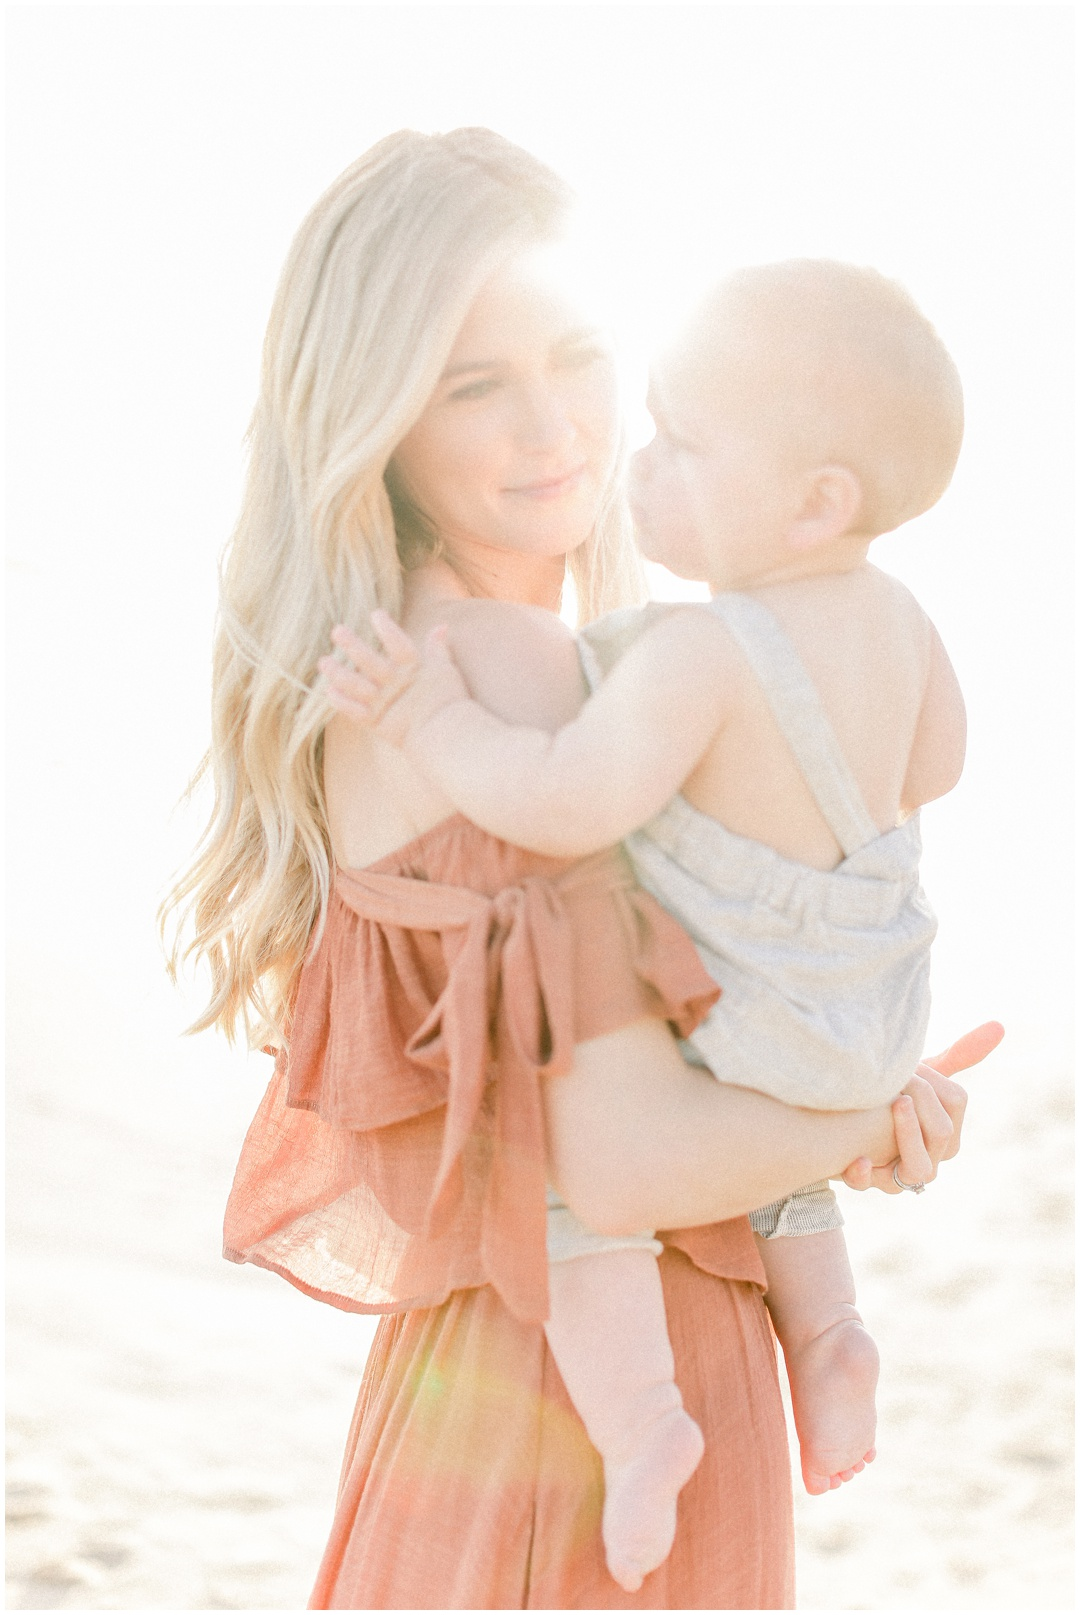 Newport_Beach_Newborn_Light_Airy_Natural_Photographer_Newport_Beach_Photographer_Orange_County_Family_Photographer_Cori_Kleckner_Photography_Huntington_Beach_Photographer_Family_OC_Newborn_Kelly_Bandak_Nik_Bandak__3509.jpg